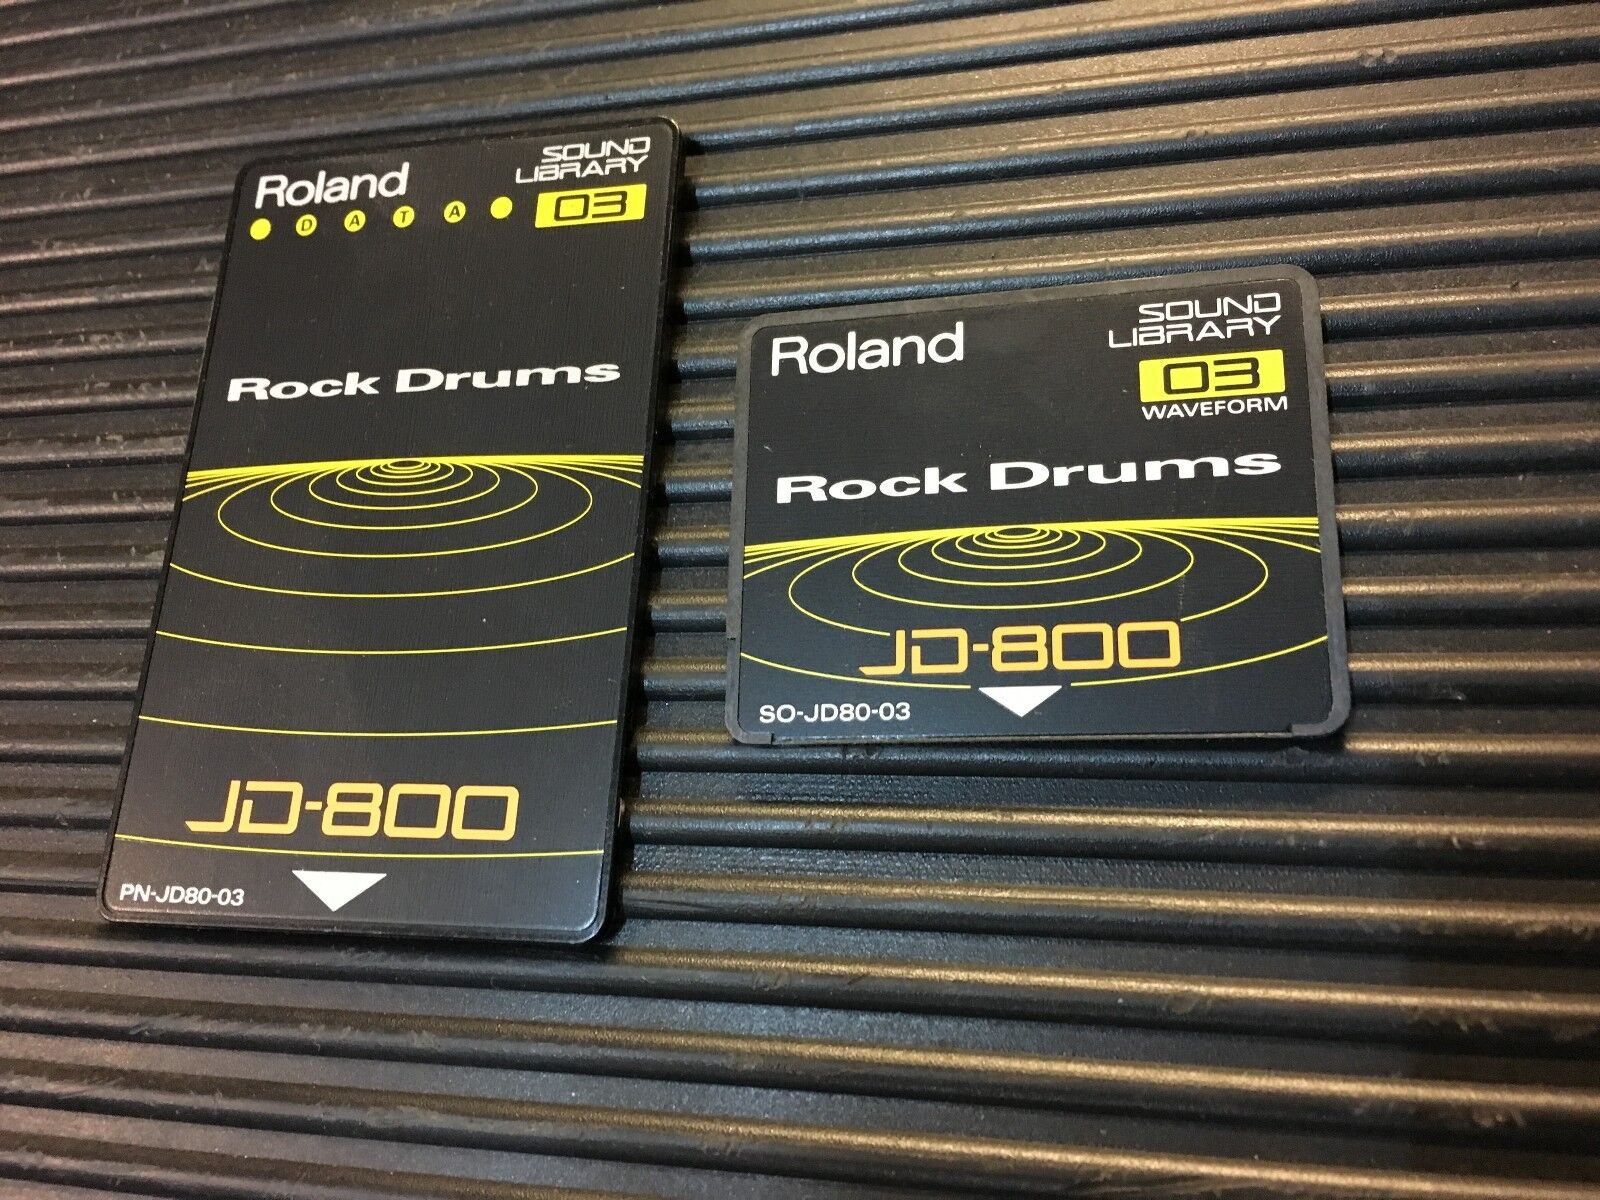 Details about Rock Drums SO-JD80-03 & PN-JD80-03 Cards for Roland JD 800  Synth //ARMENS//